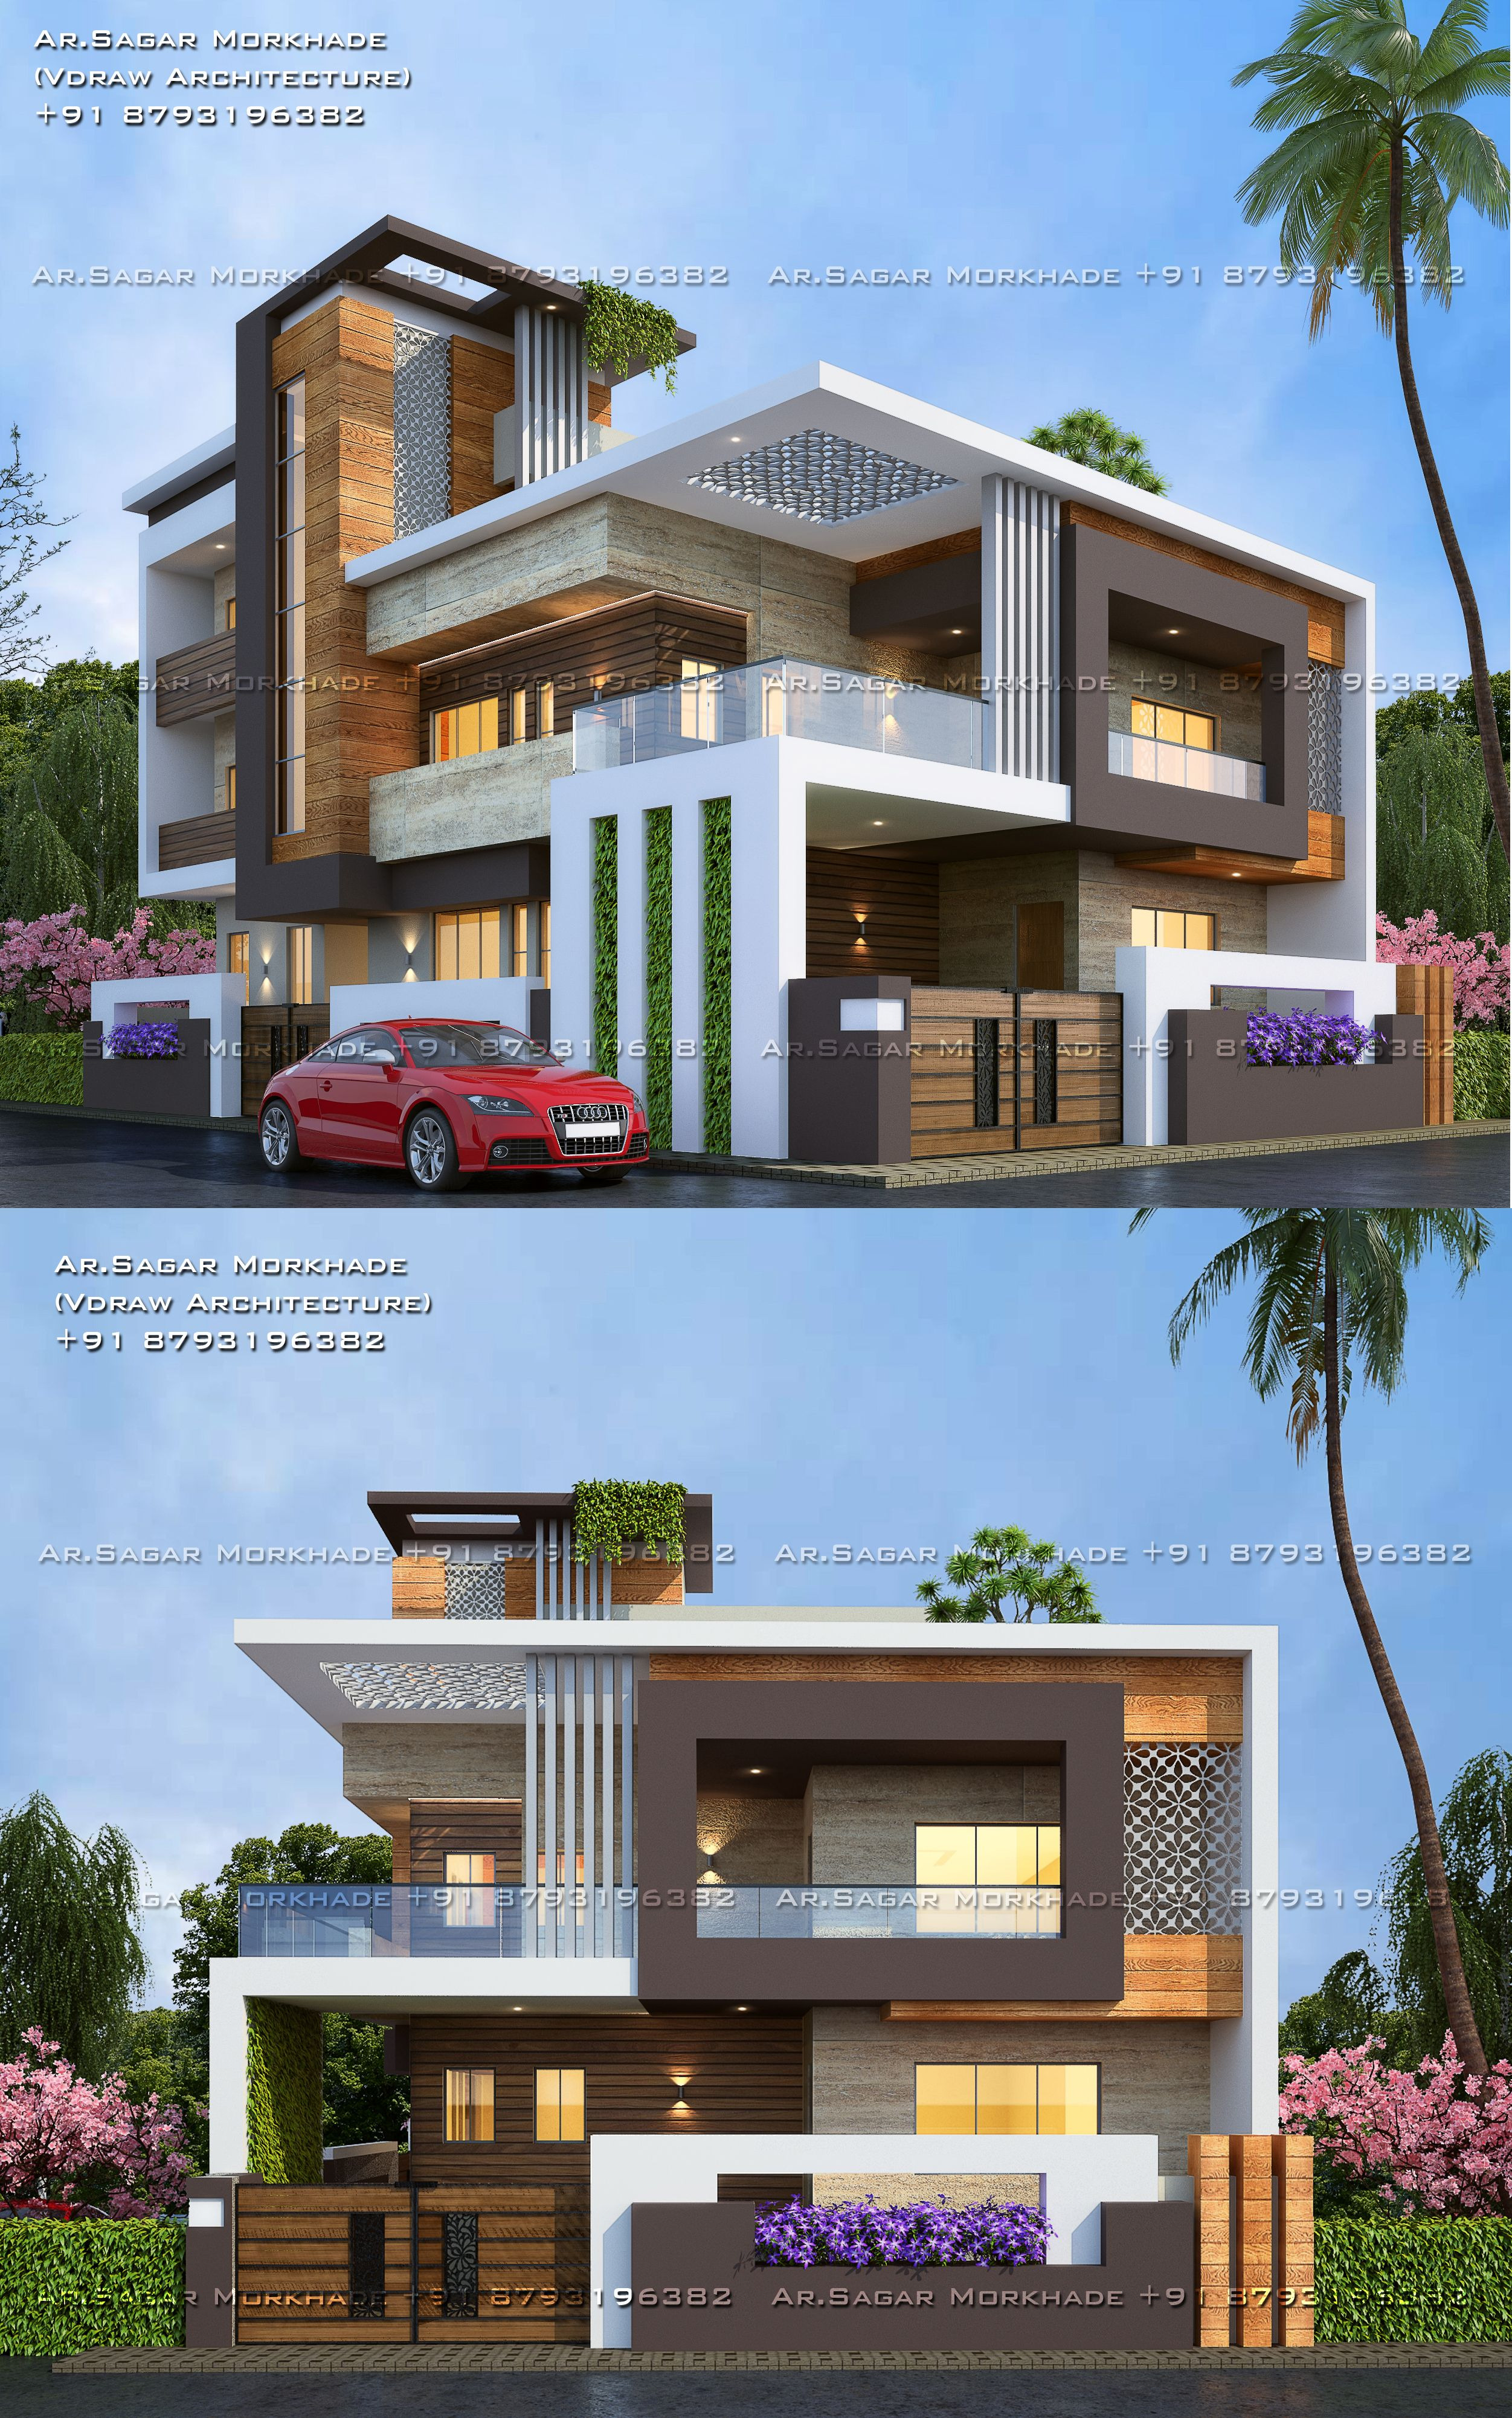 Best Small House Plans Residential Architecture Best Of Modern Residential House Bungalow Exterior by Ar Sagar